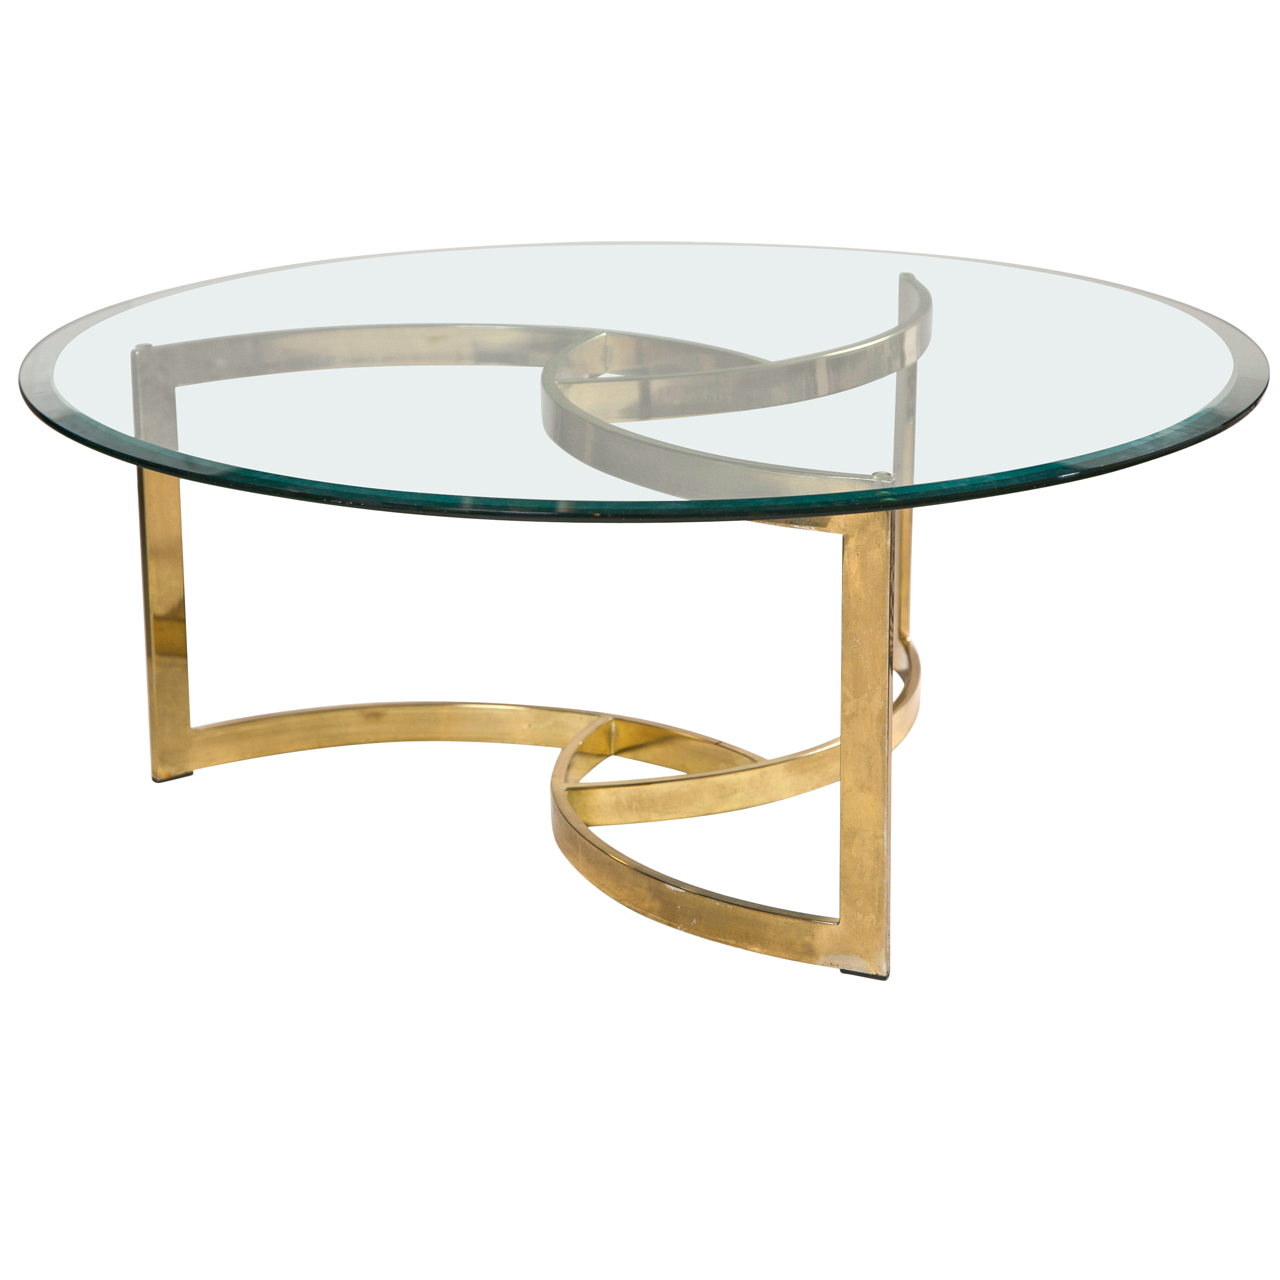 Round Glass Coffee Table Coffee Table Round Glass Glass Coffee Tables And End Tables Glass Coffee